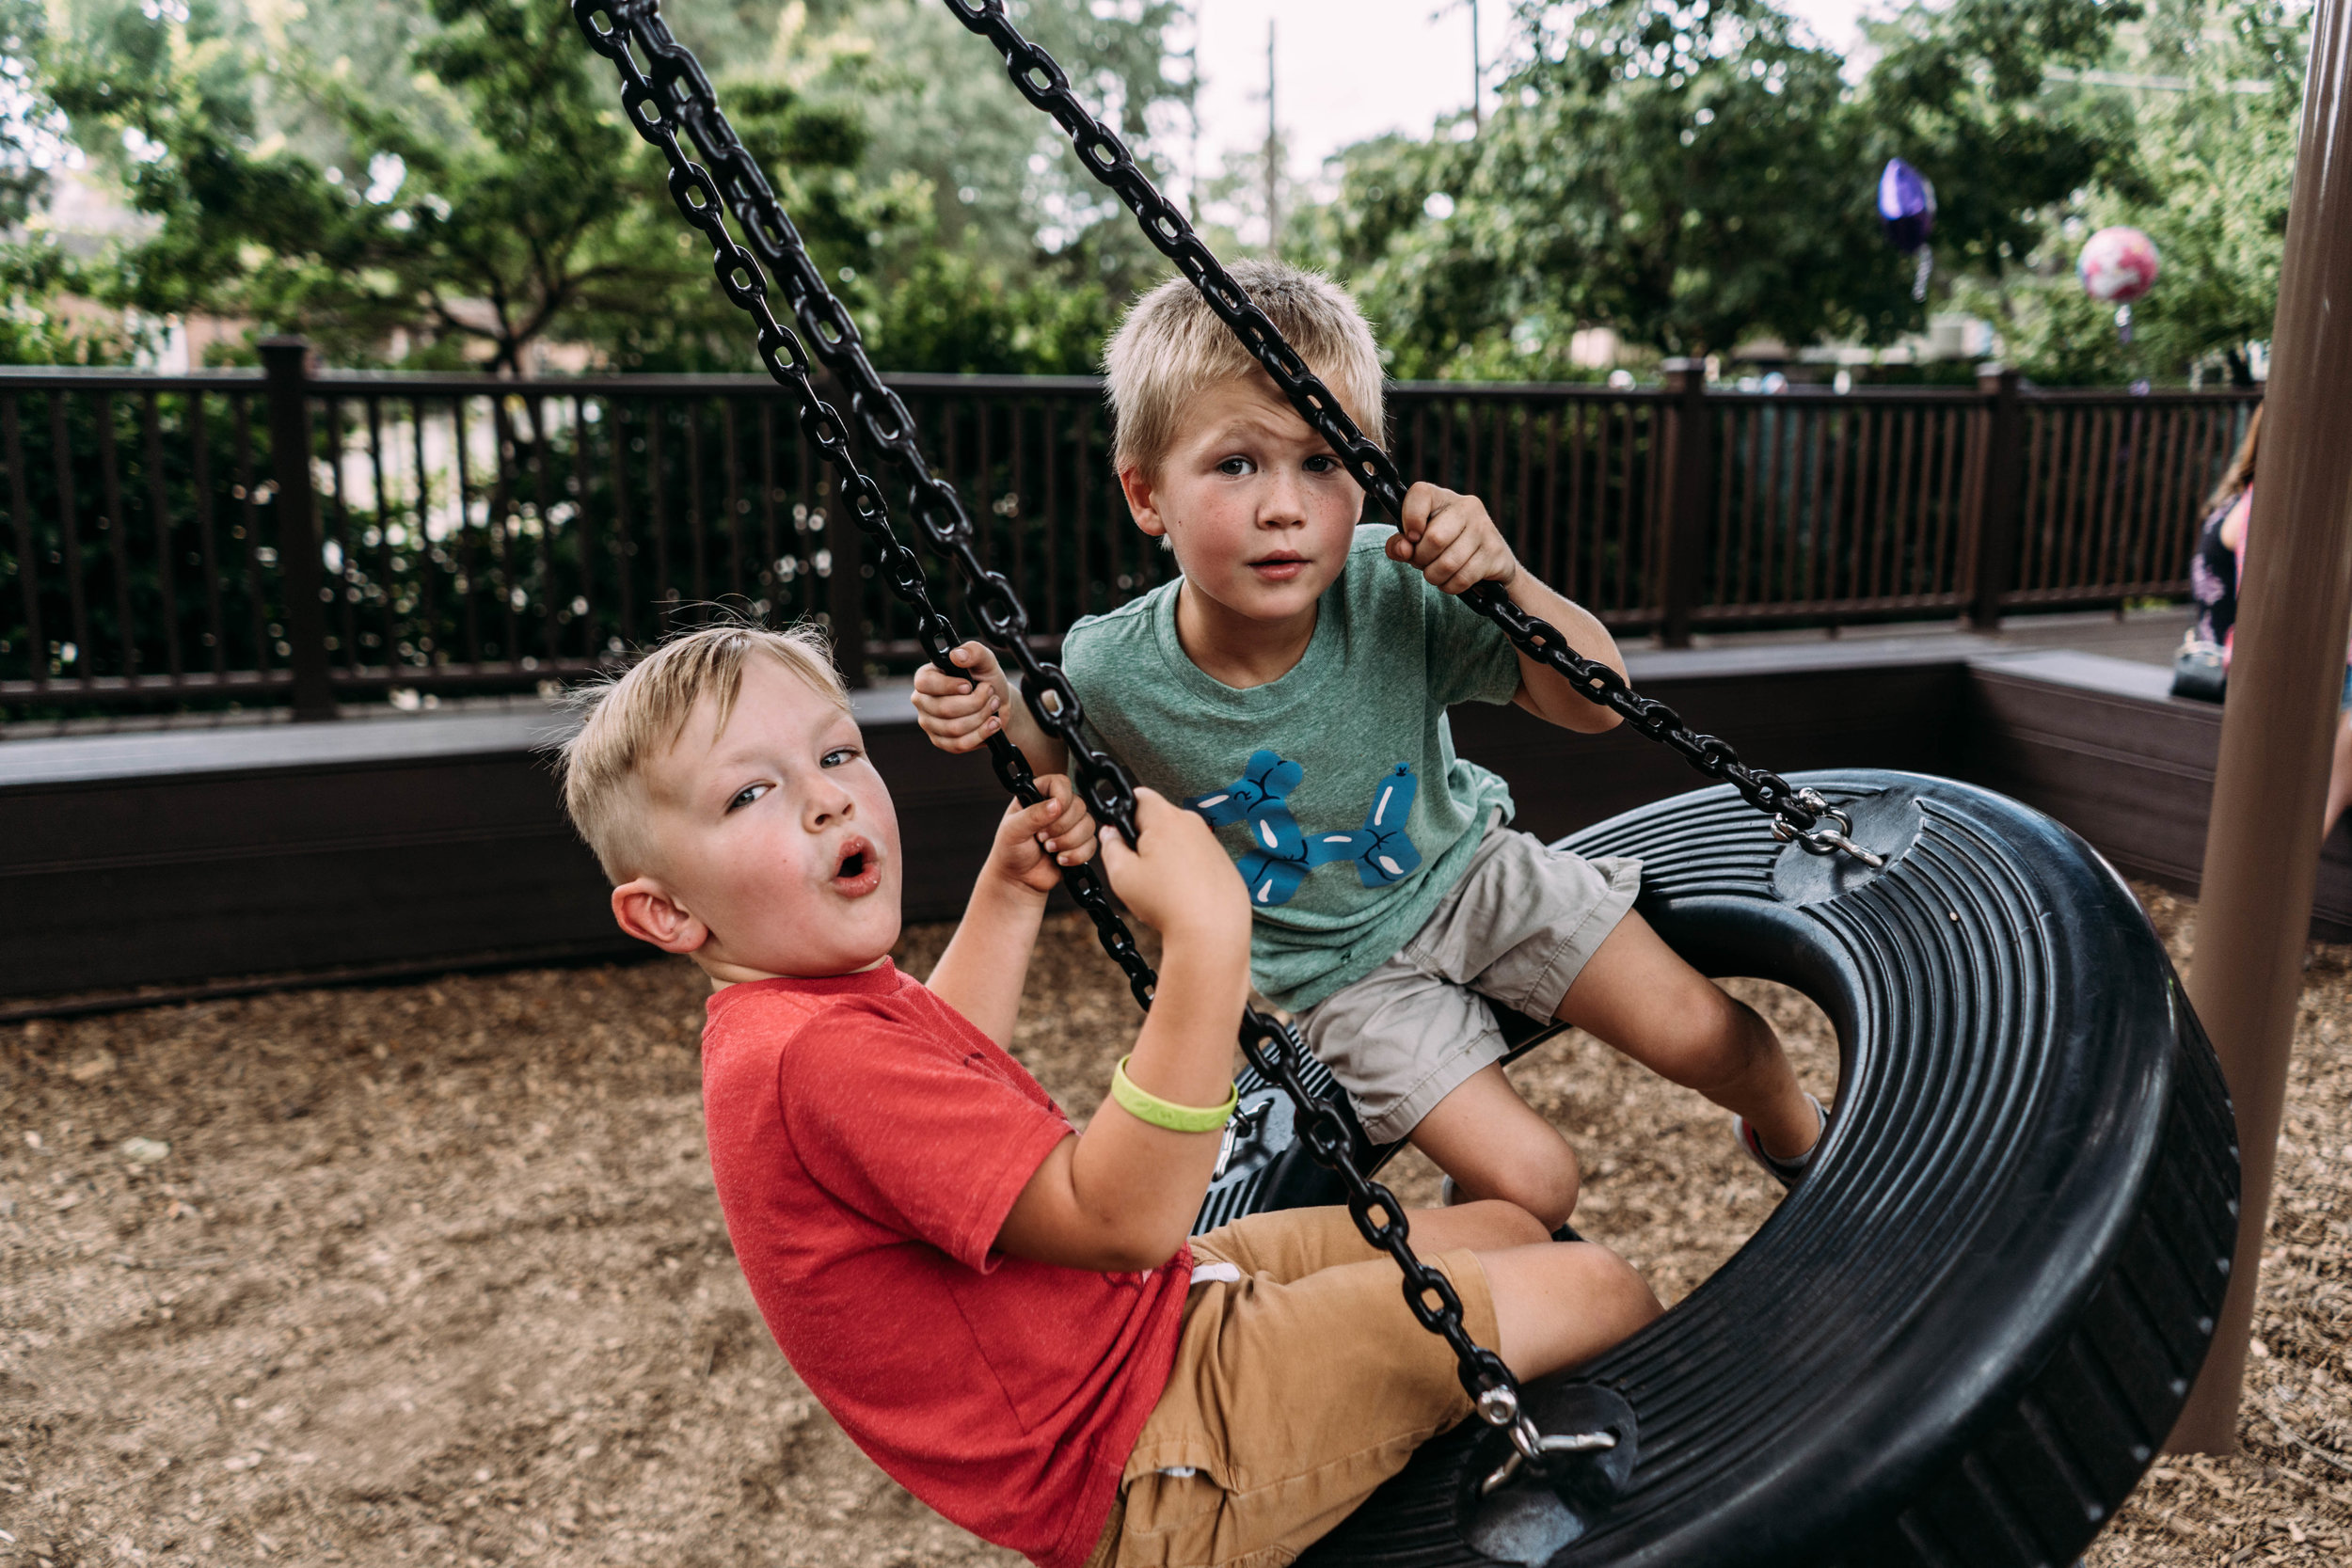 birthday party at the park-34.jpg